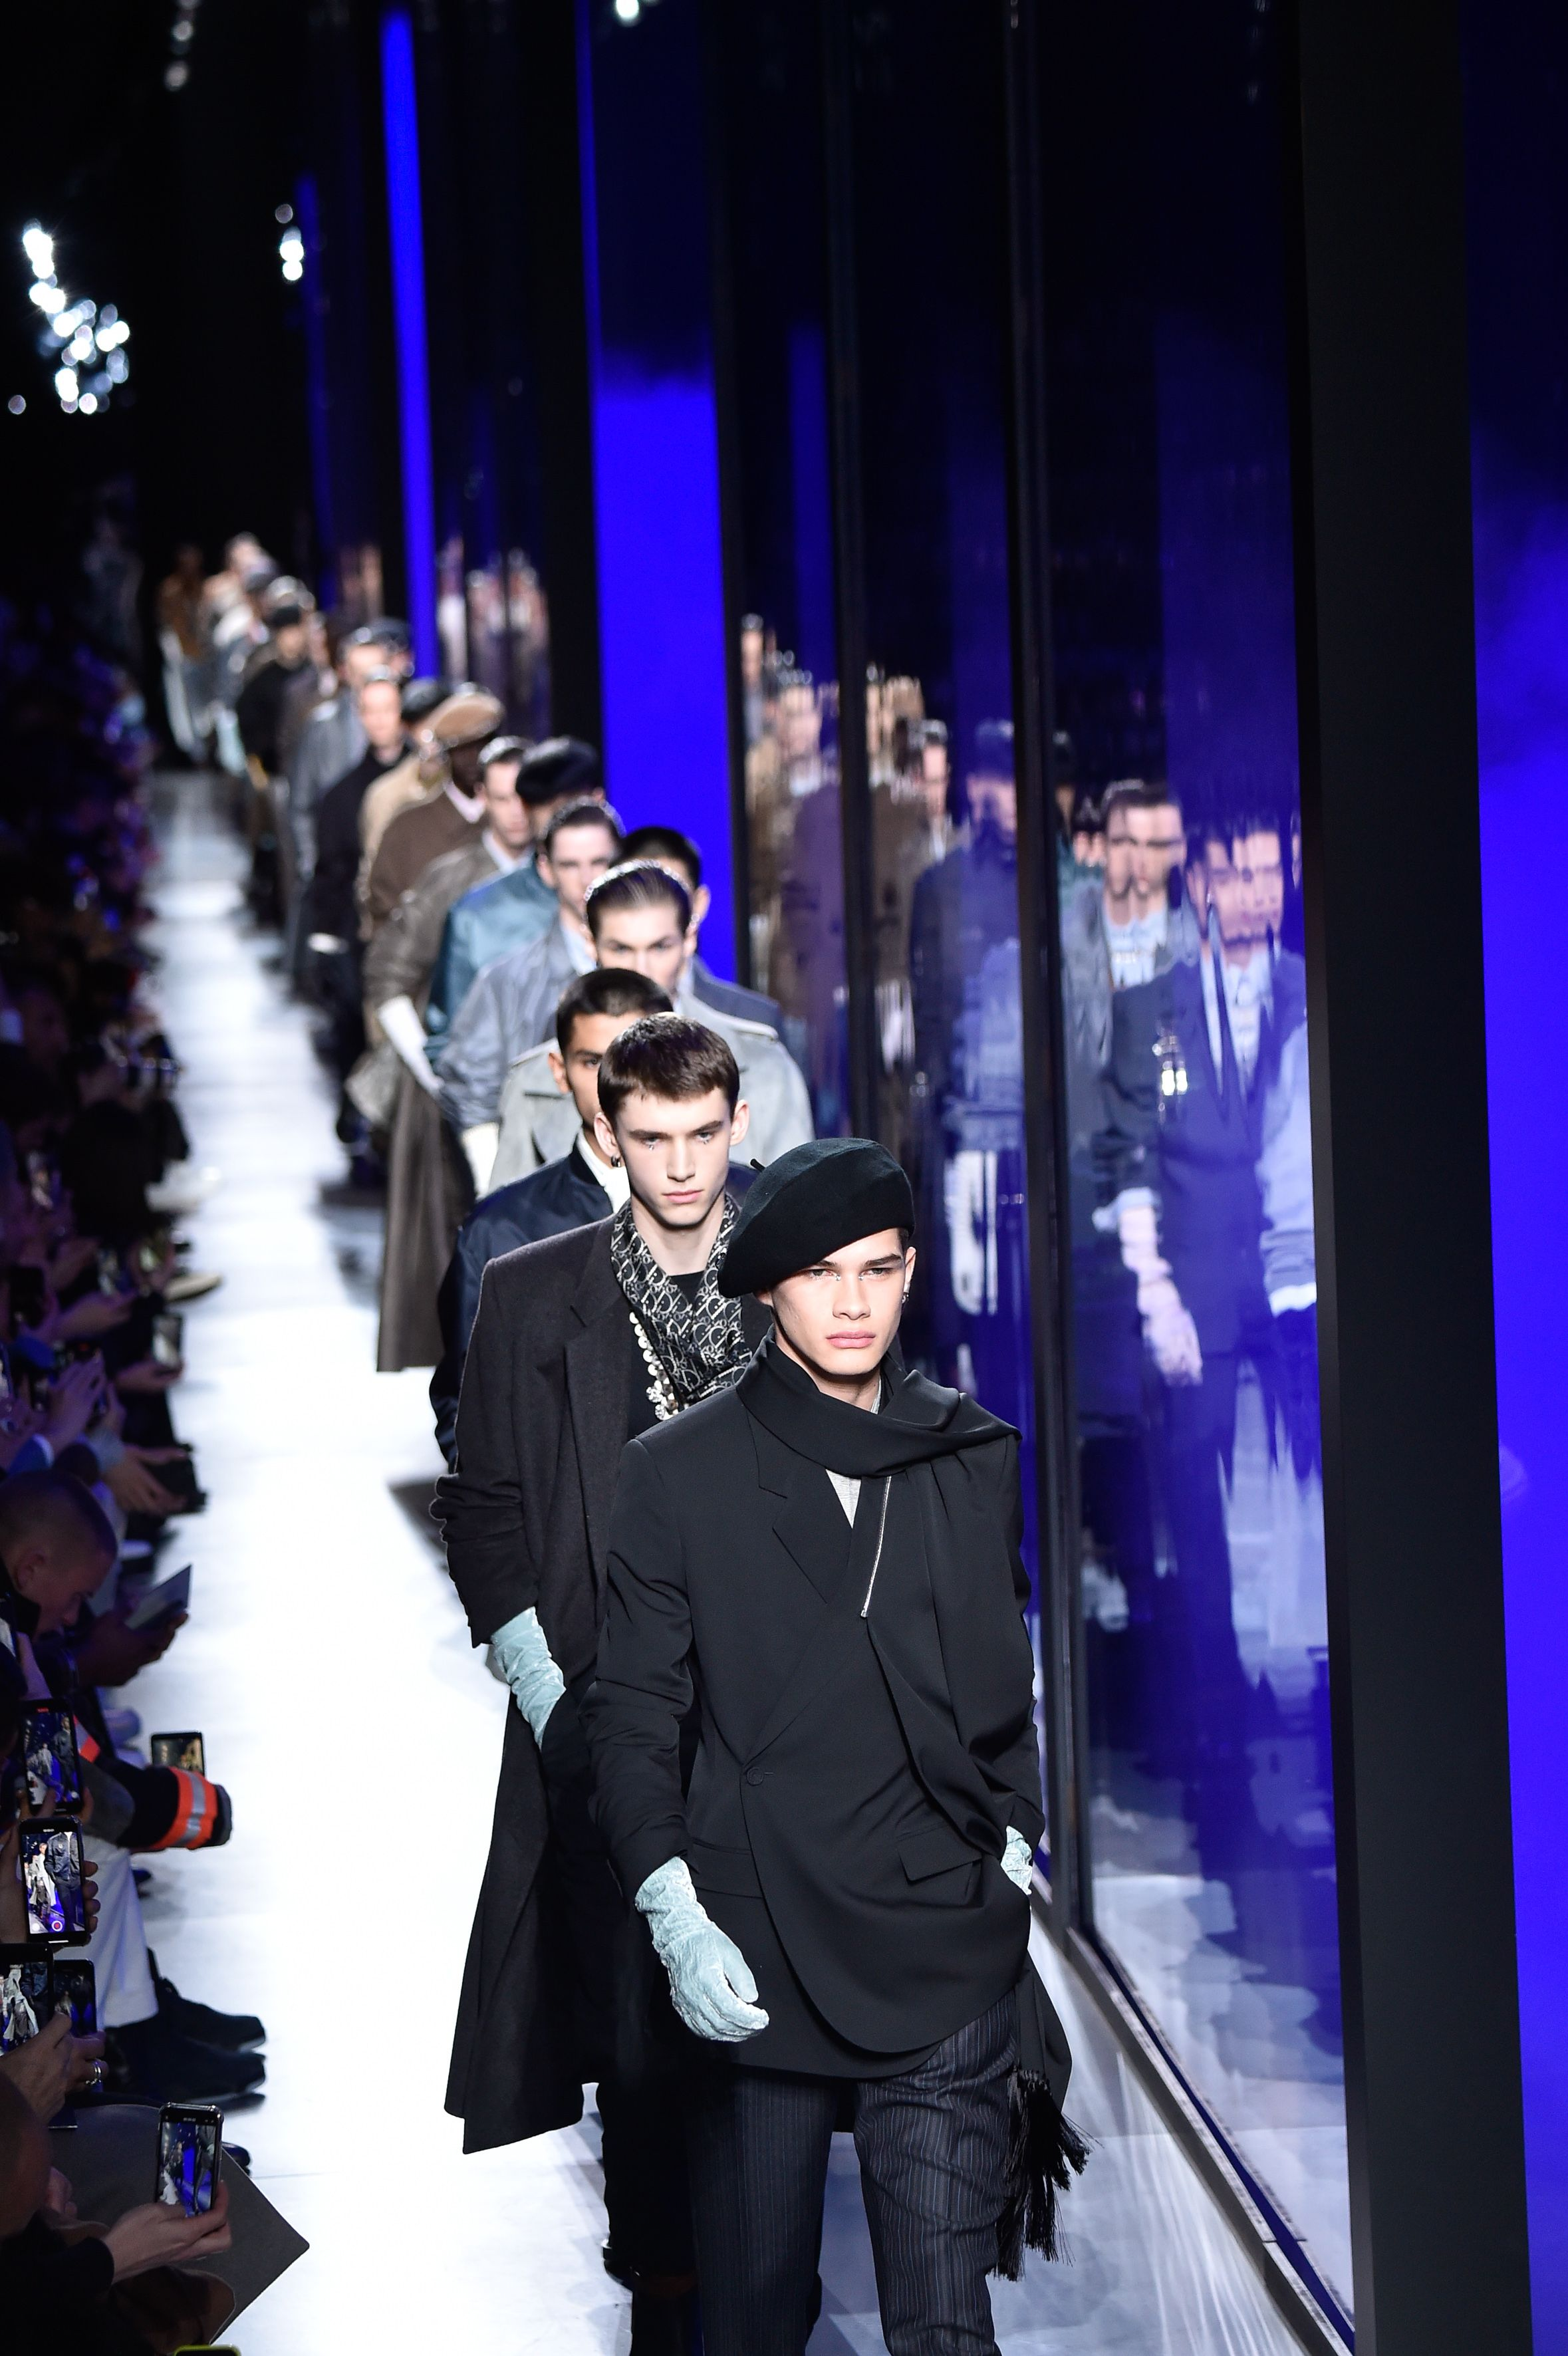 The Big Paris Fashion Week Looks We'd Take Straight From The Runway